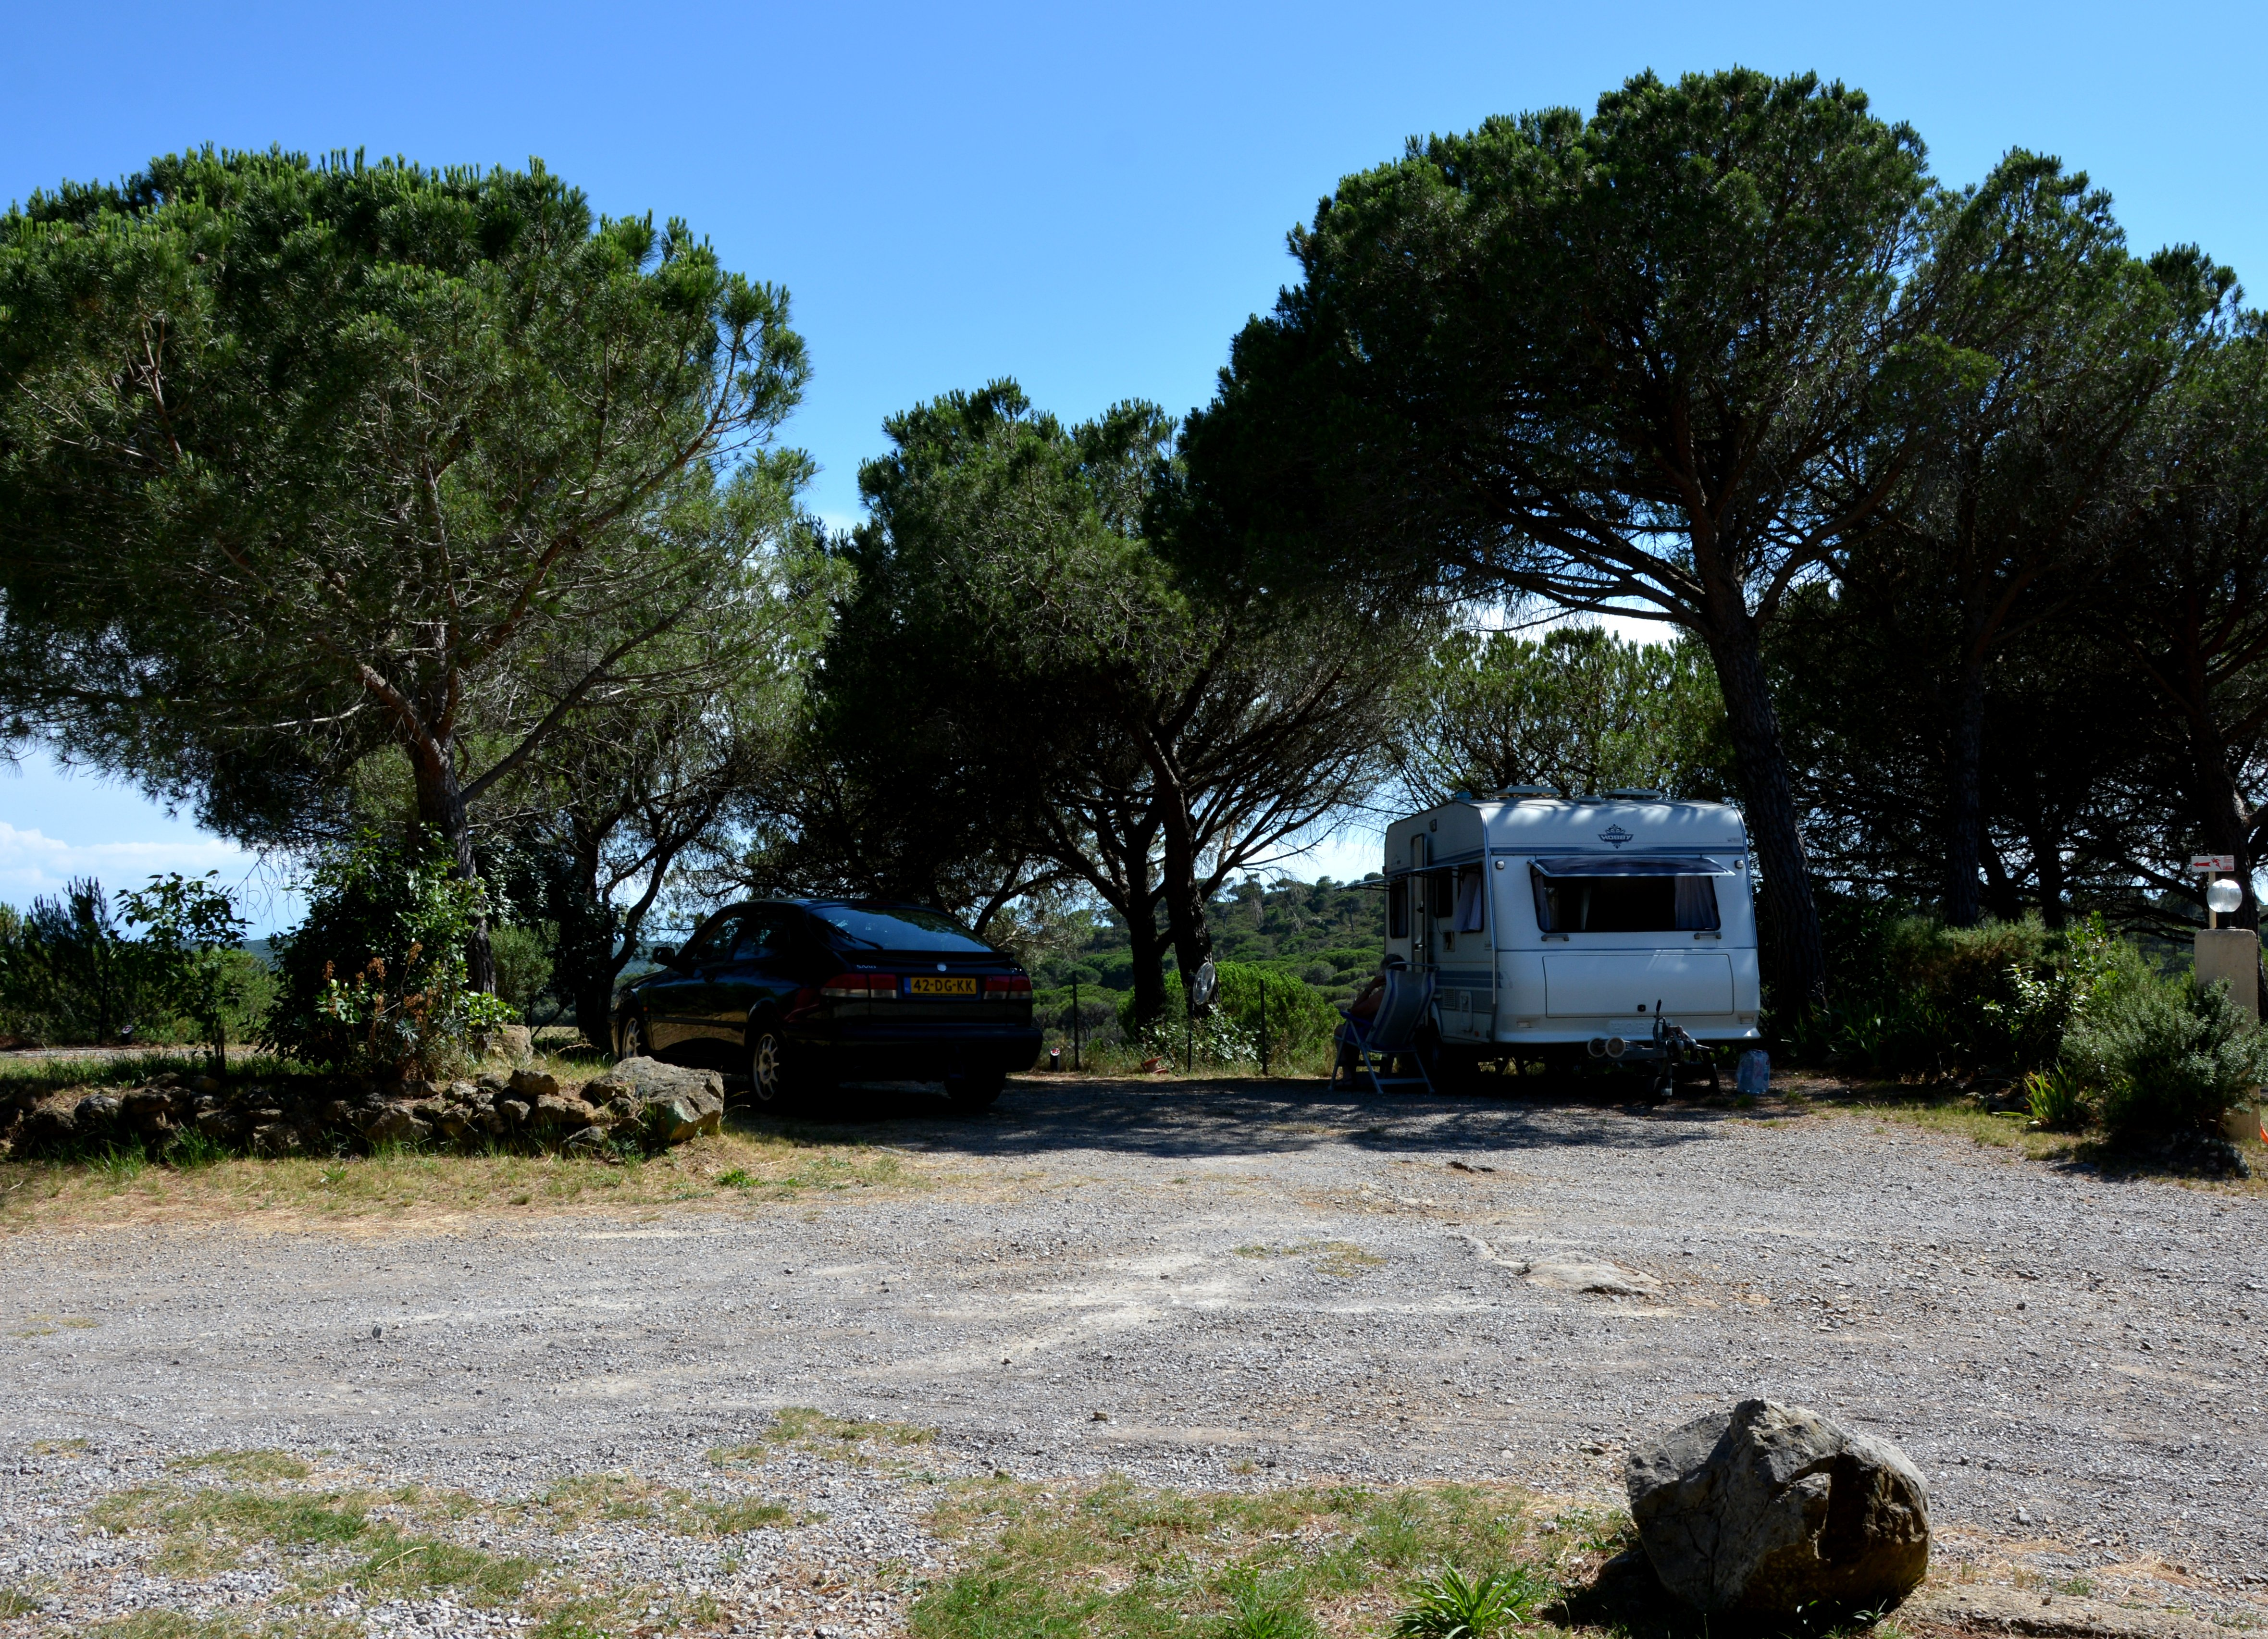 Camping narbonne for Camping narbonne plage avec piscine